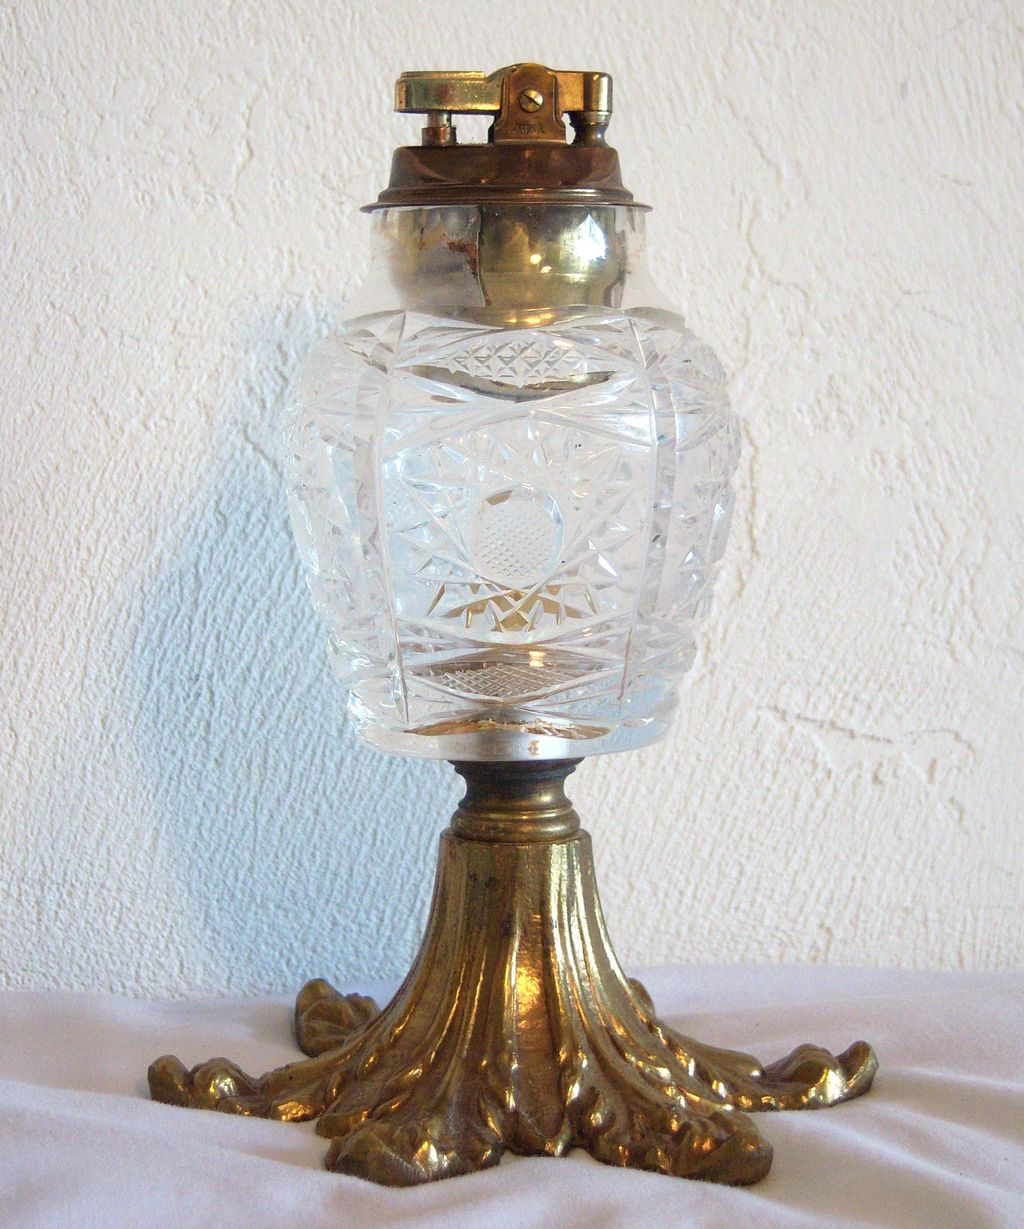 Japanese Glass Table Lighter with Brass Base 1950's